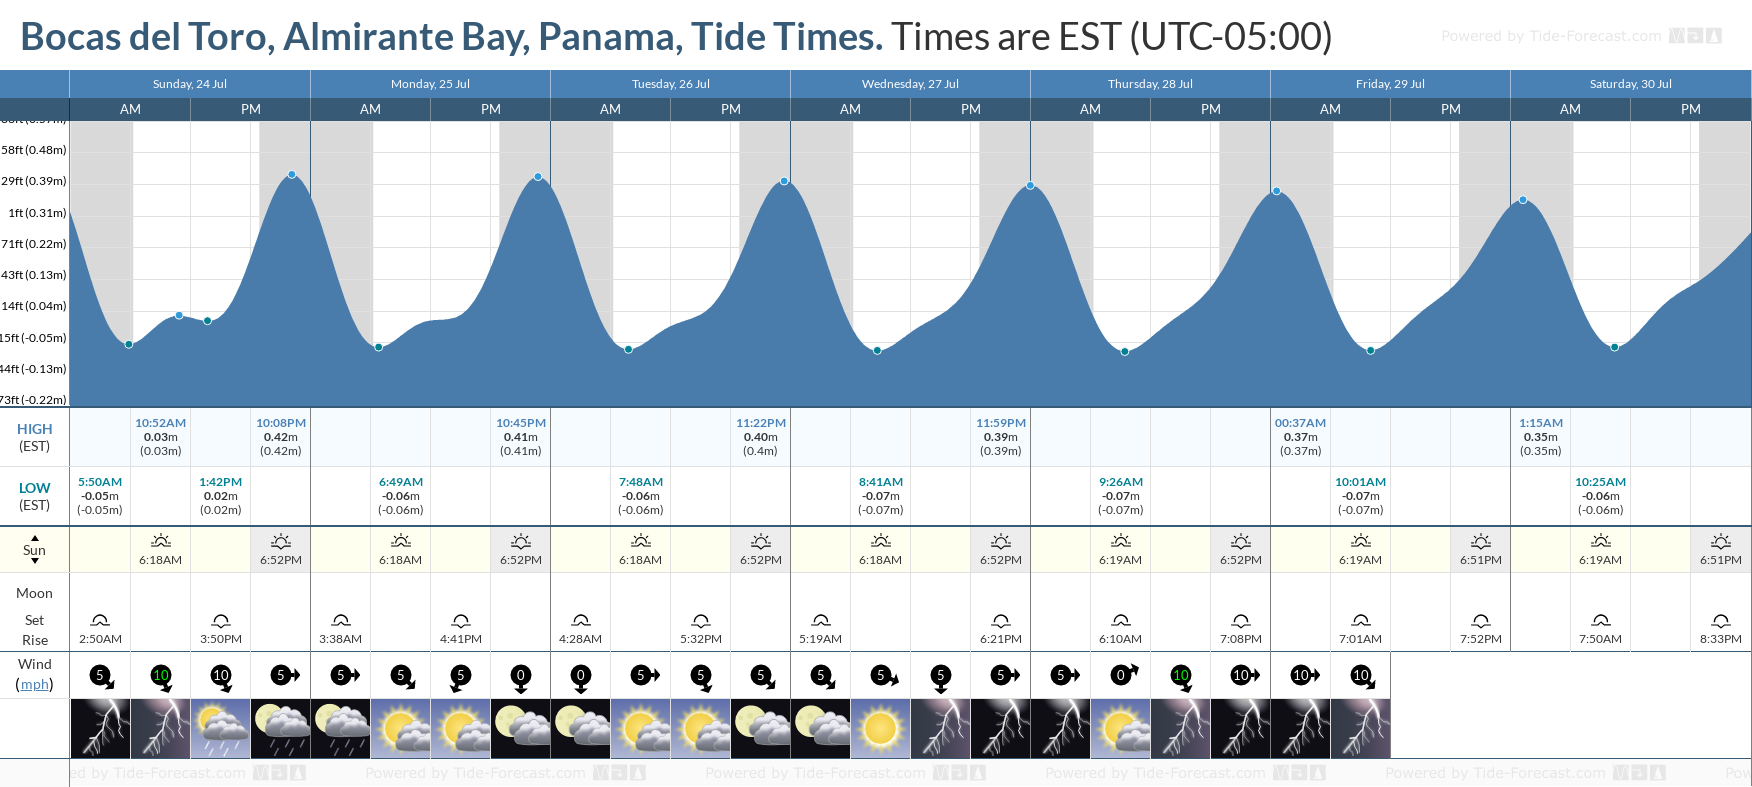 Bocas del Toro, Almirante Bay, Panama Tide Chart including high and low tide tide times for the next 7 days